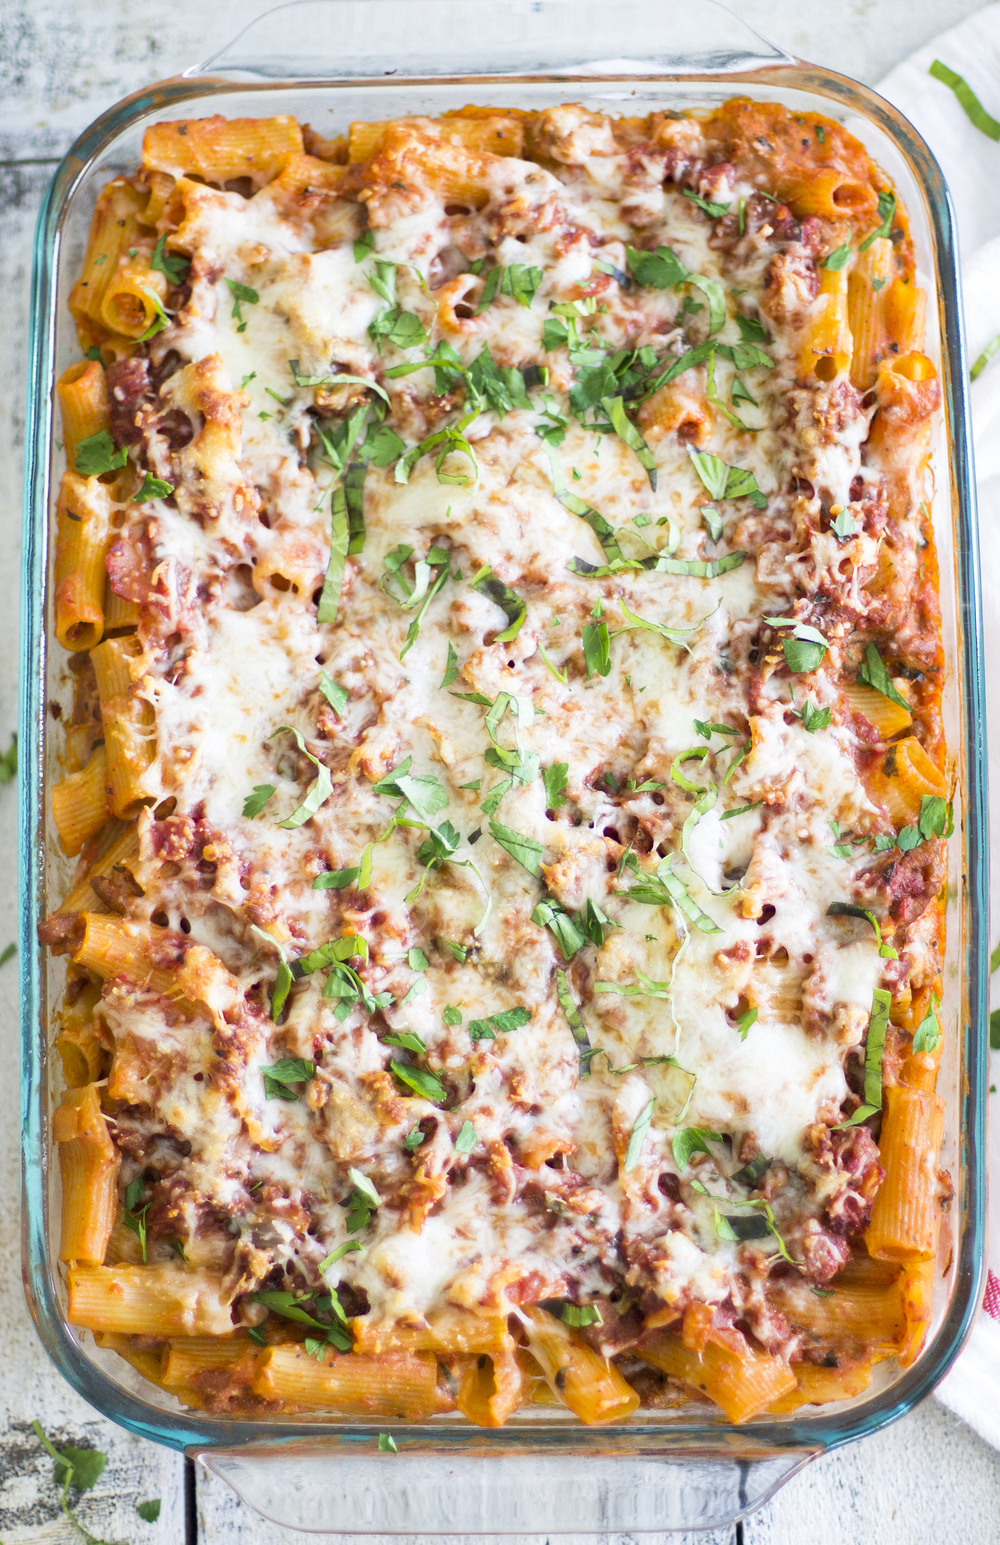 Easy Baked Ziti: My Diary of Us